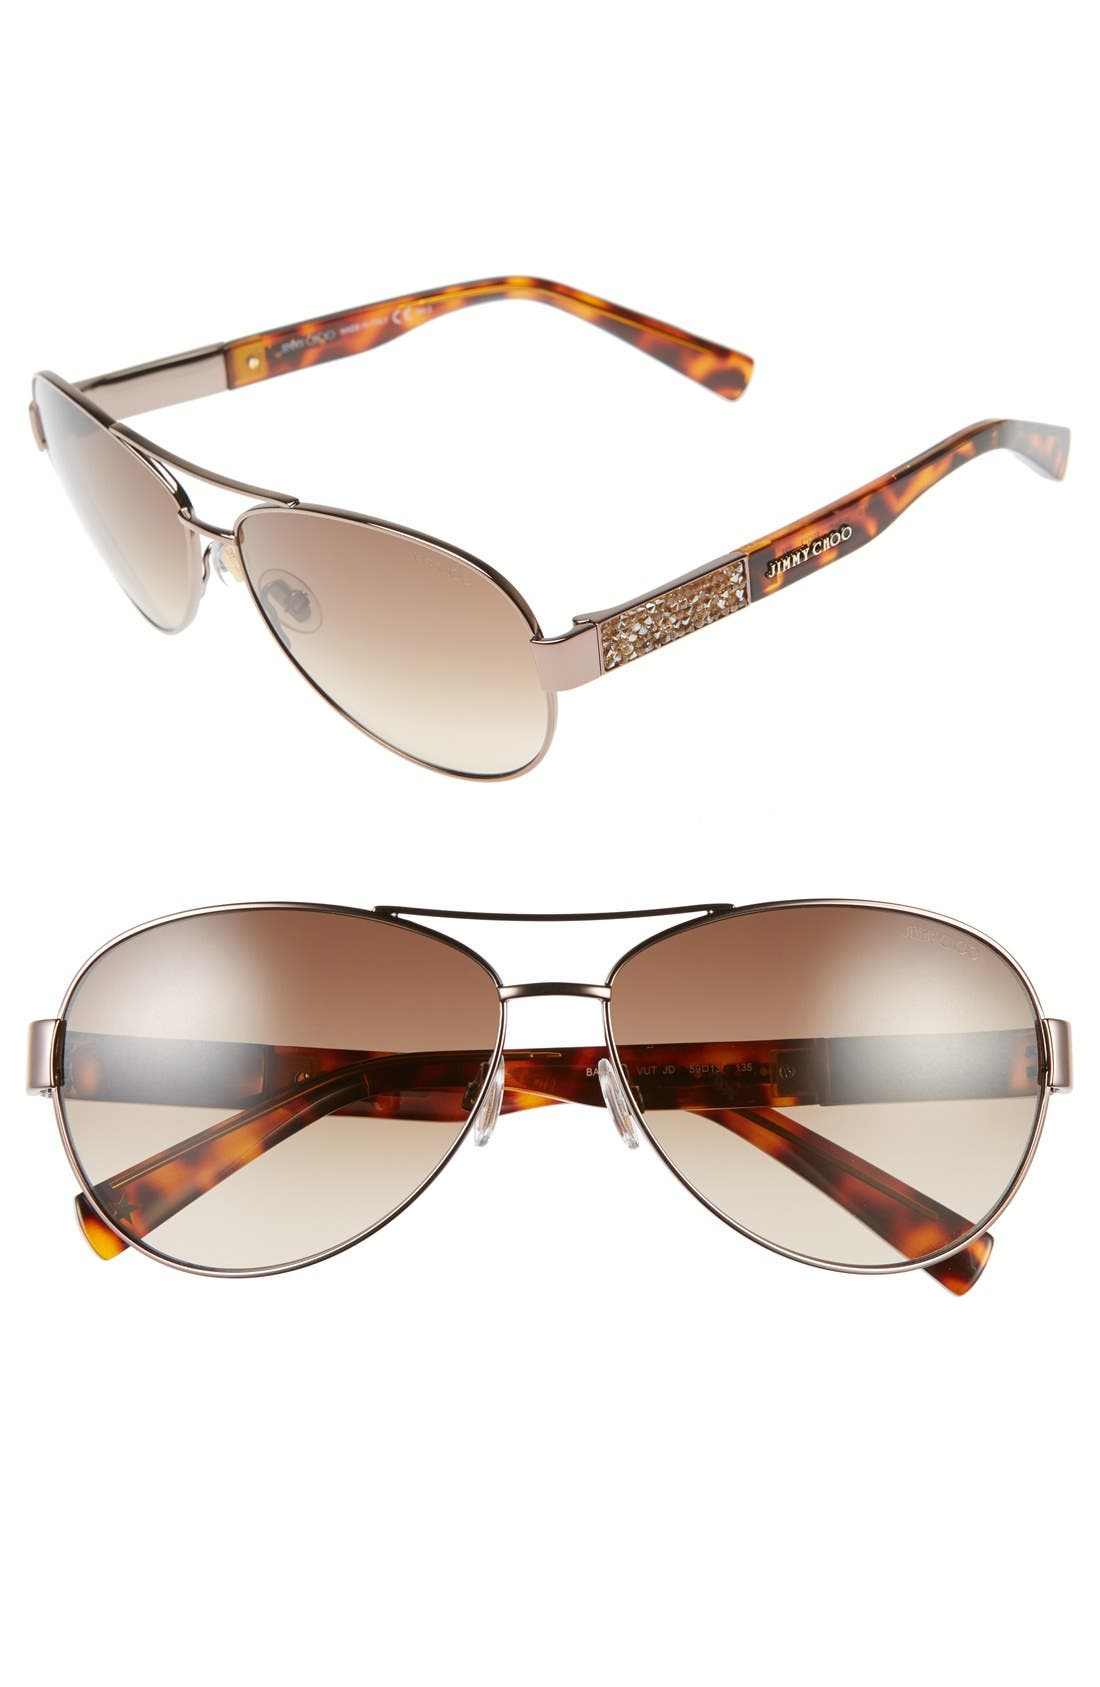 Alternate Image 1 Selected - Jimmy Choo 'Babas' 59mm Aviator Sunglasses